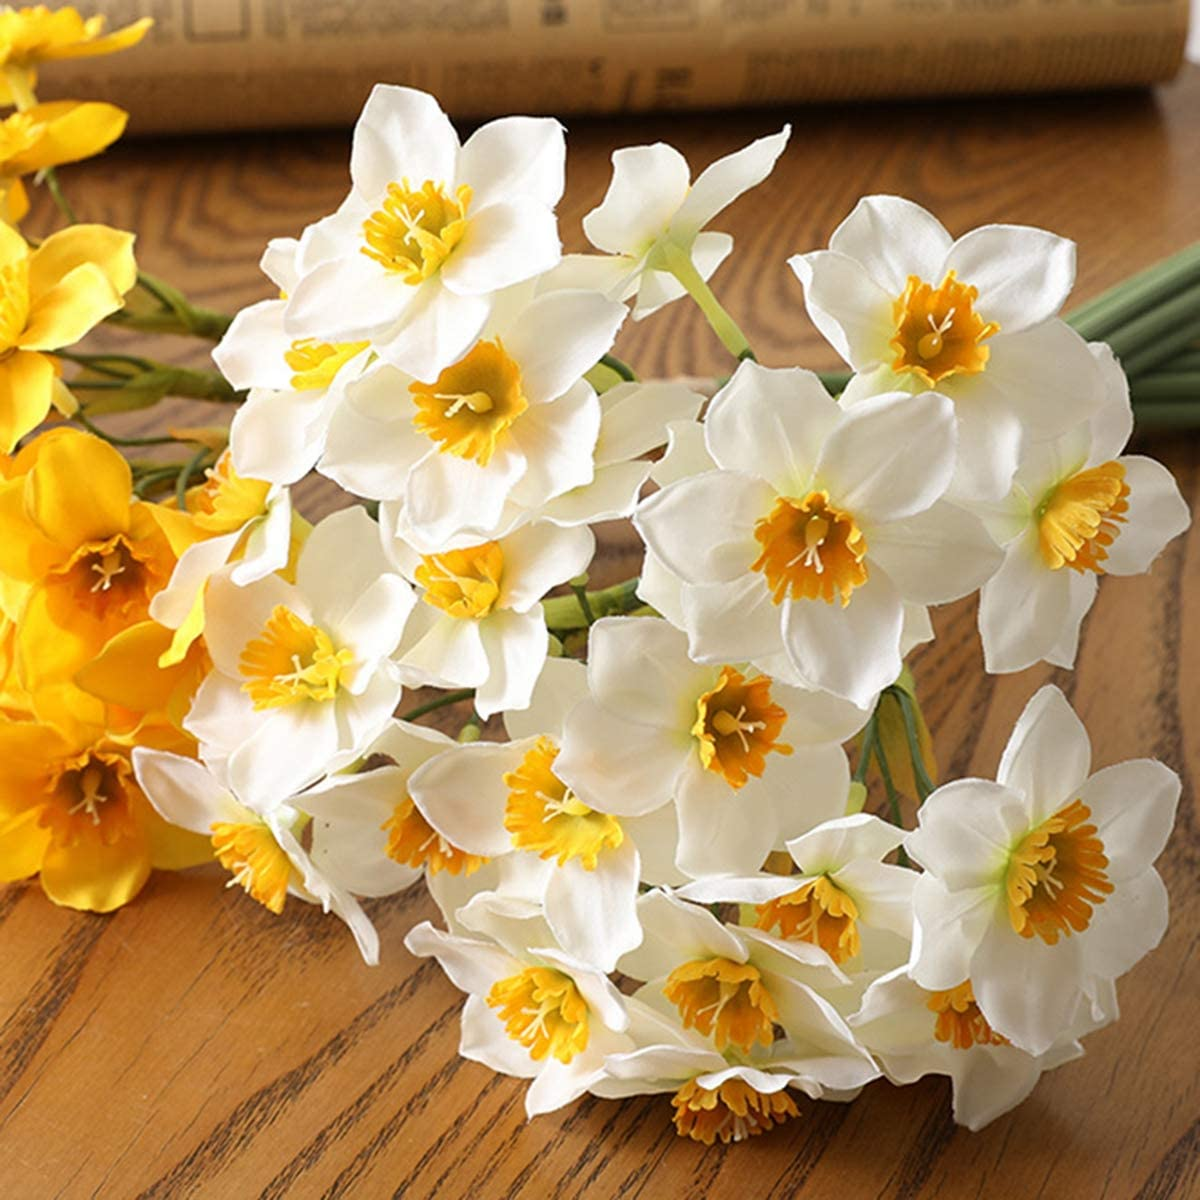 AISE Bridal Bouquet DIY Wreath Living Room Wedding Garland Artificial Plant Fake Flowers Narcissus Daffodil white